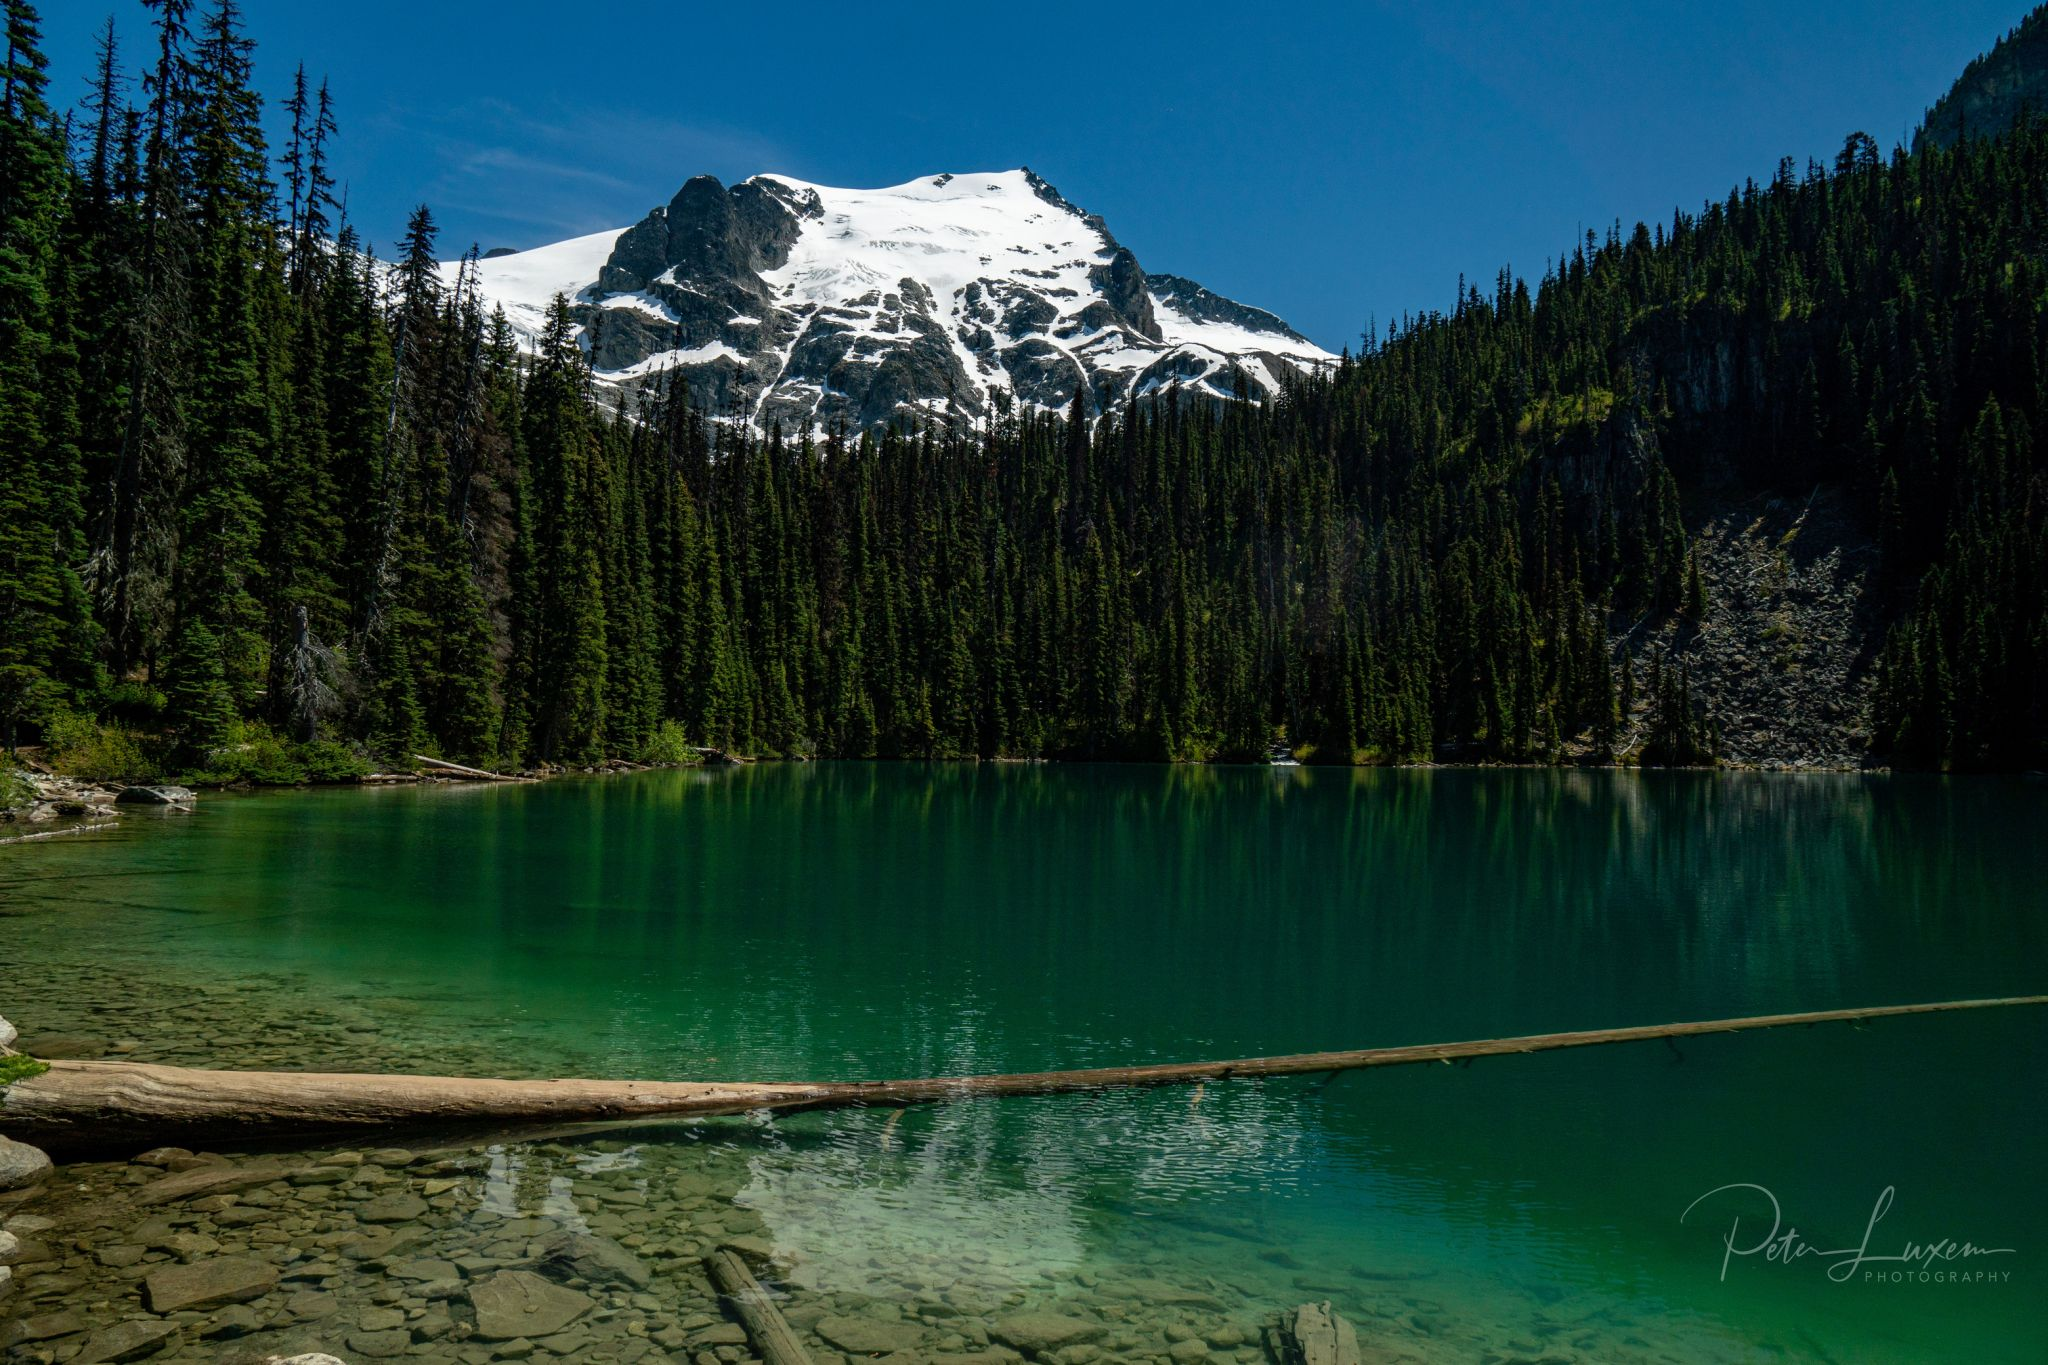 Middle Joffre lakes, Canada